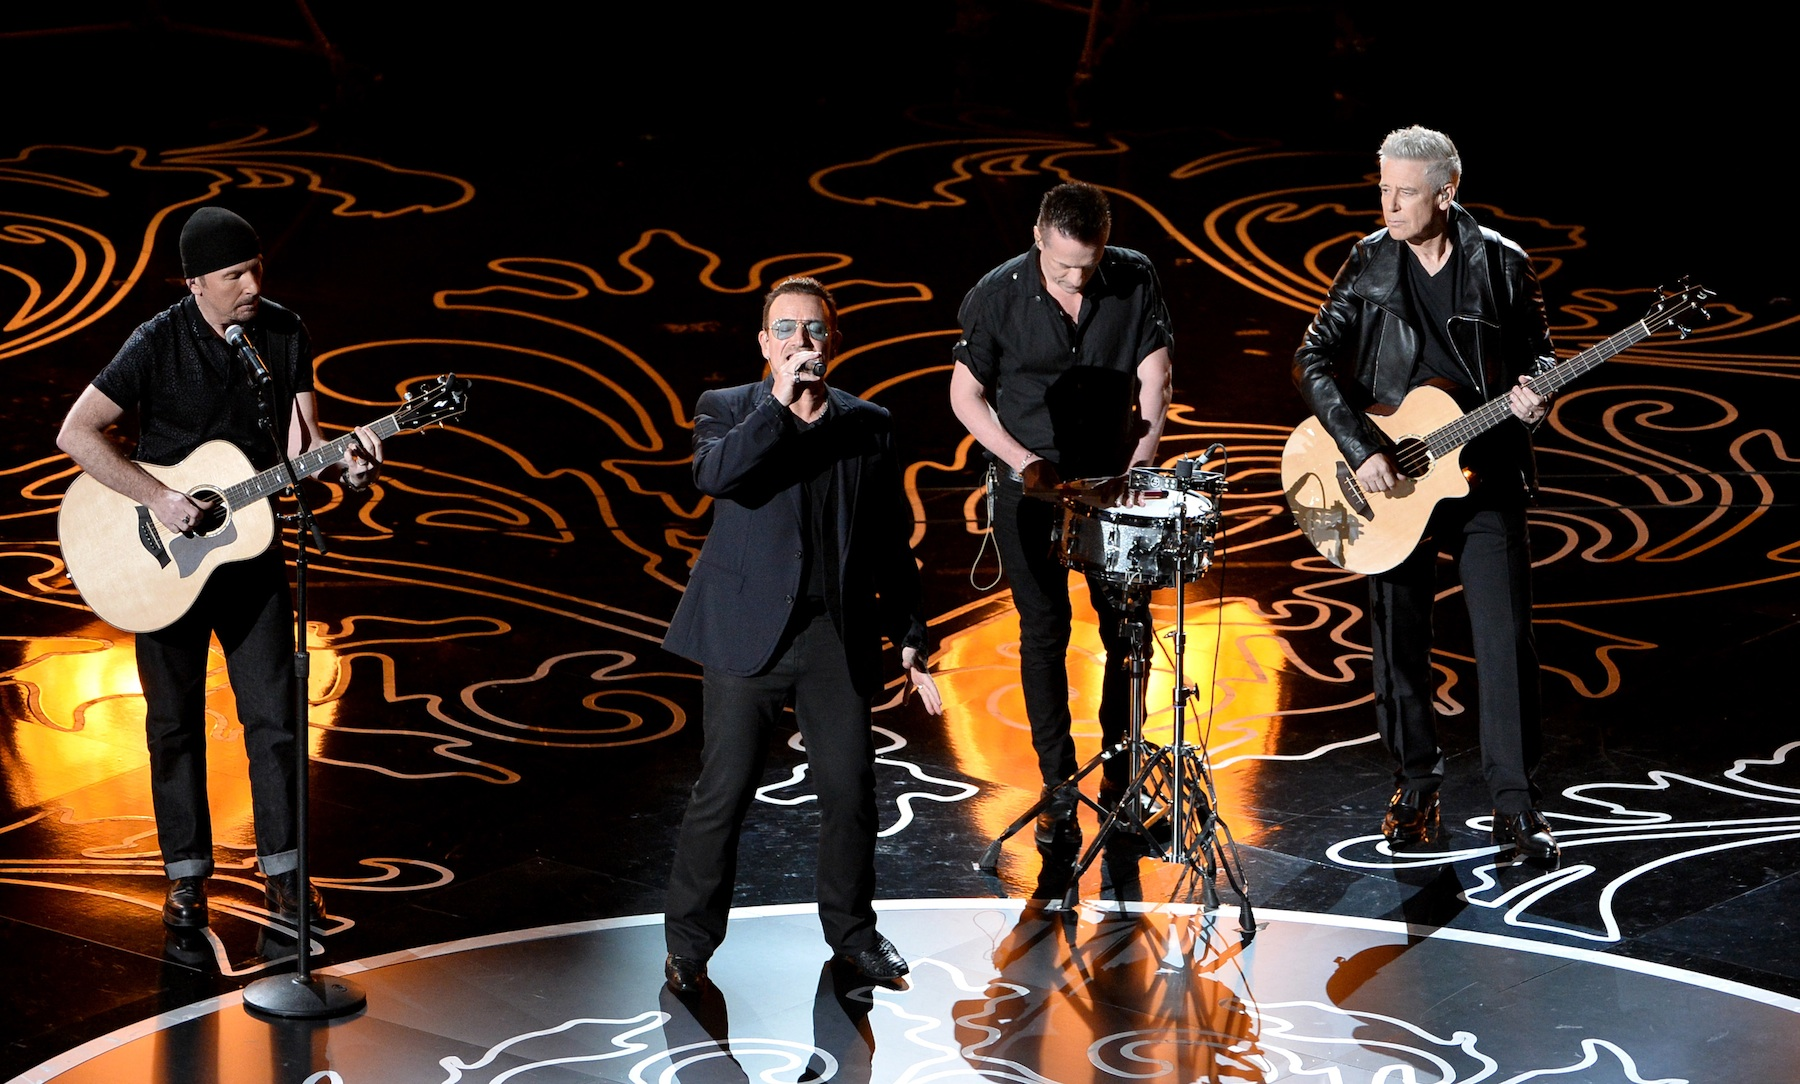 U2 Back Catalog Sees Massive Sales Bump After 'Songs of Innocence' Launch